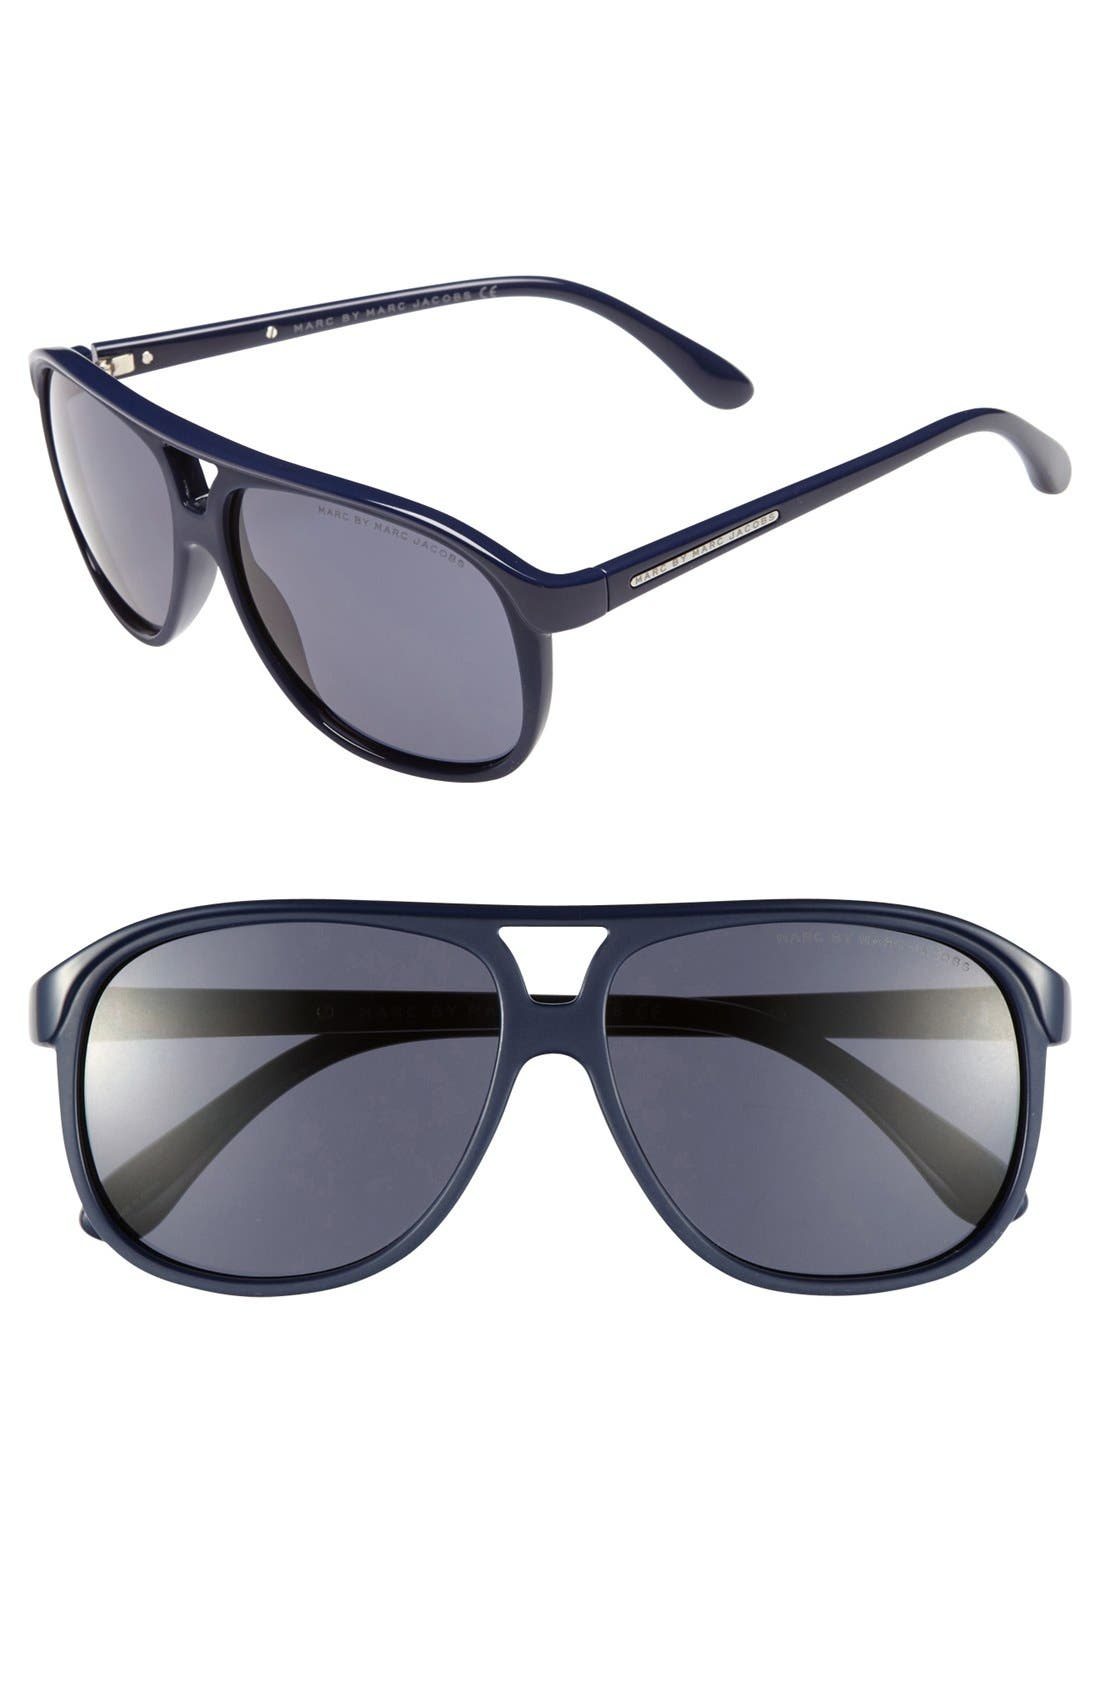 Main Image - MARC BY MARC JACOBS 59mm Navigator Sunglasses